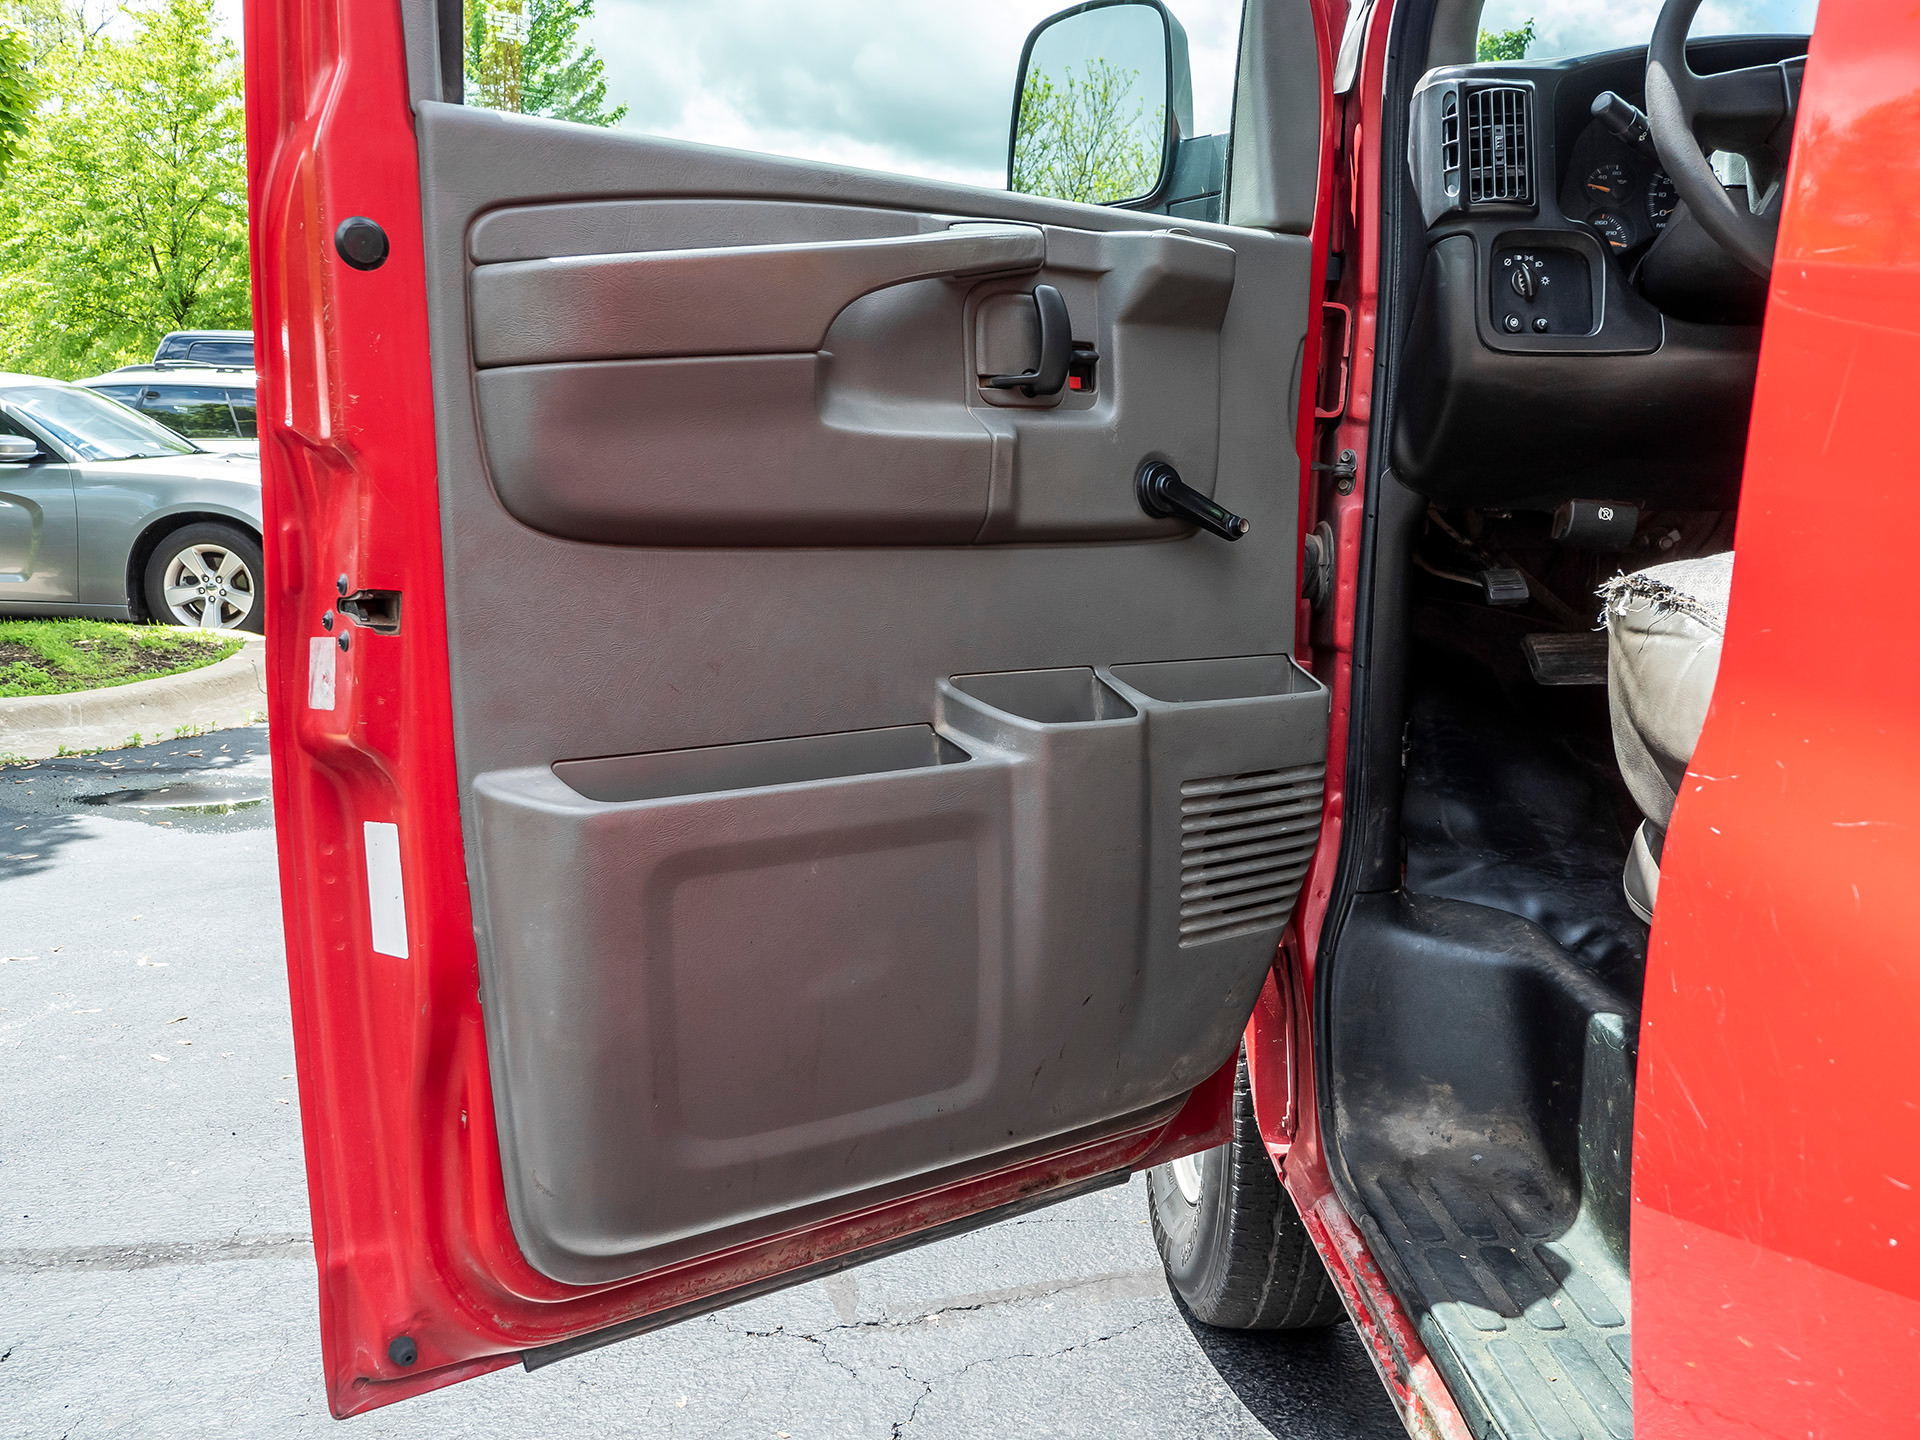 Used-2006-Chevrolet-Express-Cargo-Van-2500HD